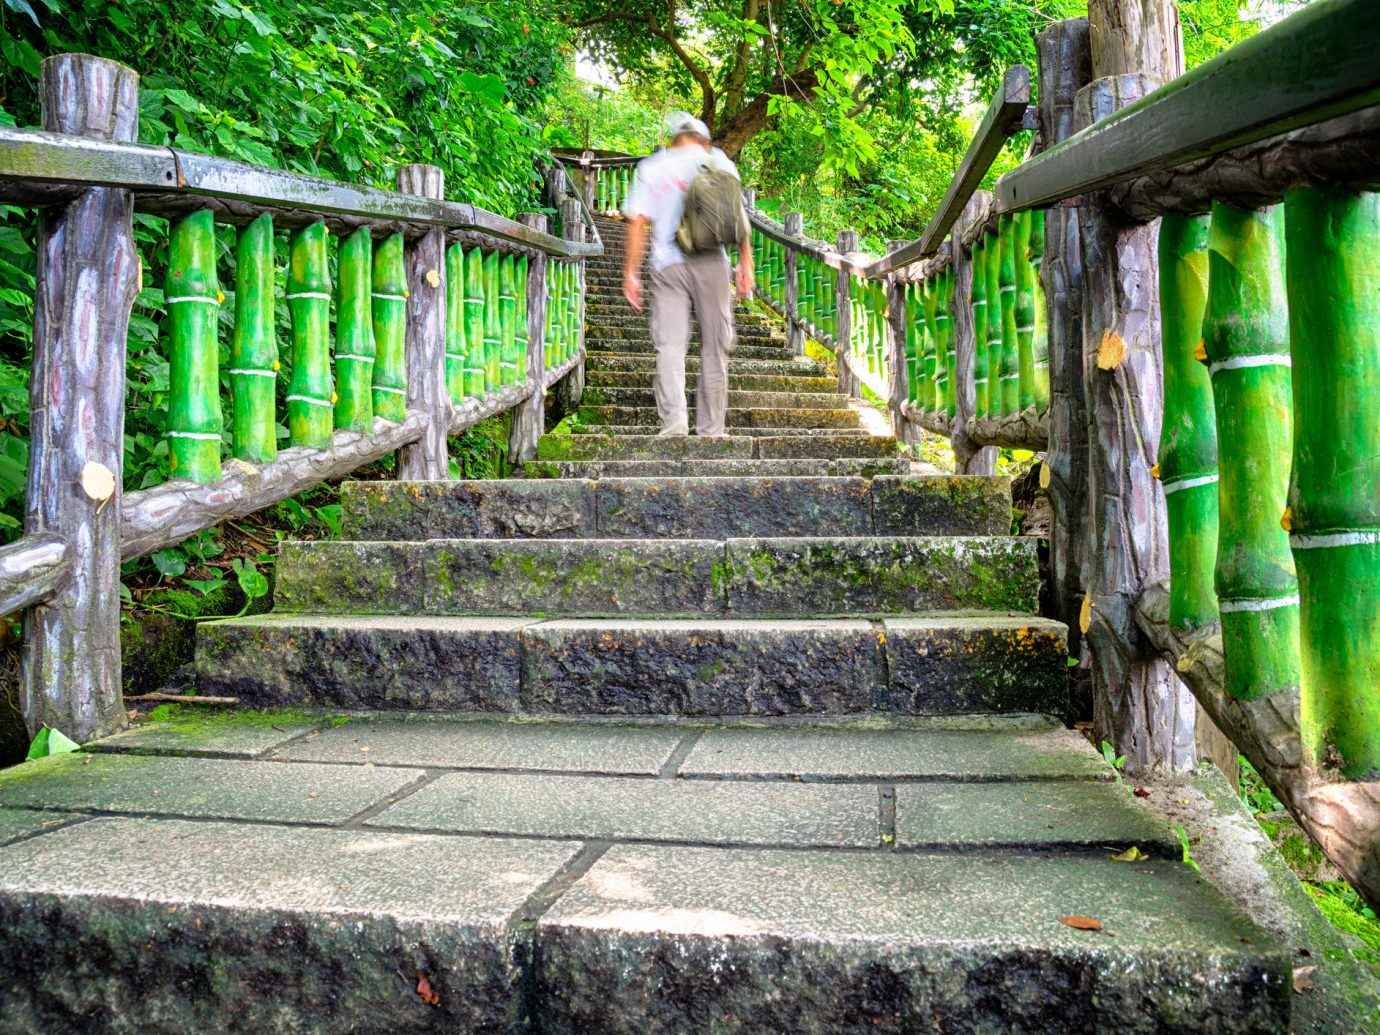 Trip Ideas outdoor green standing walkway Garden bridge Jungle park